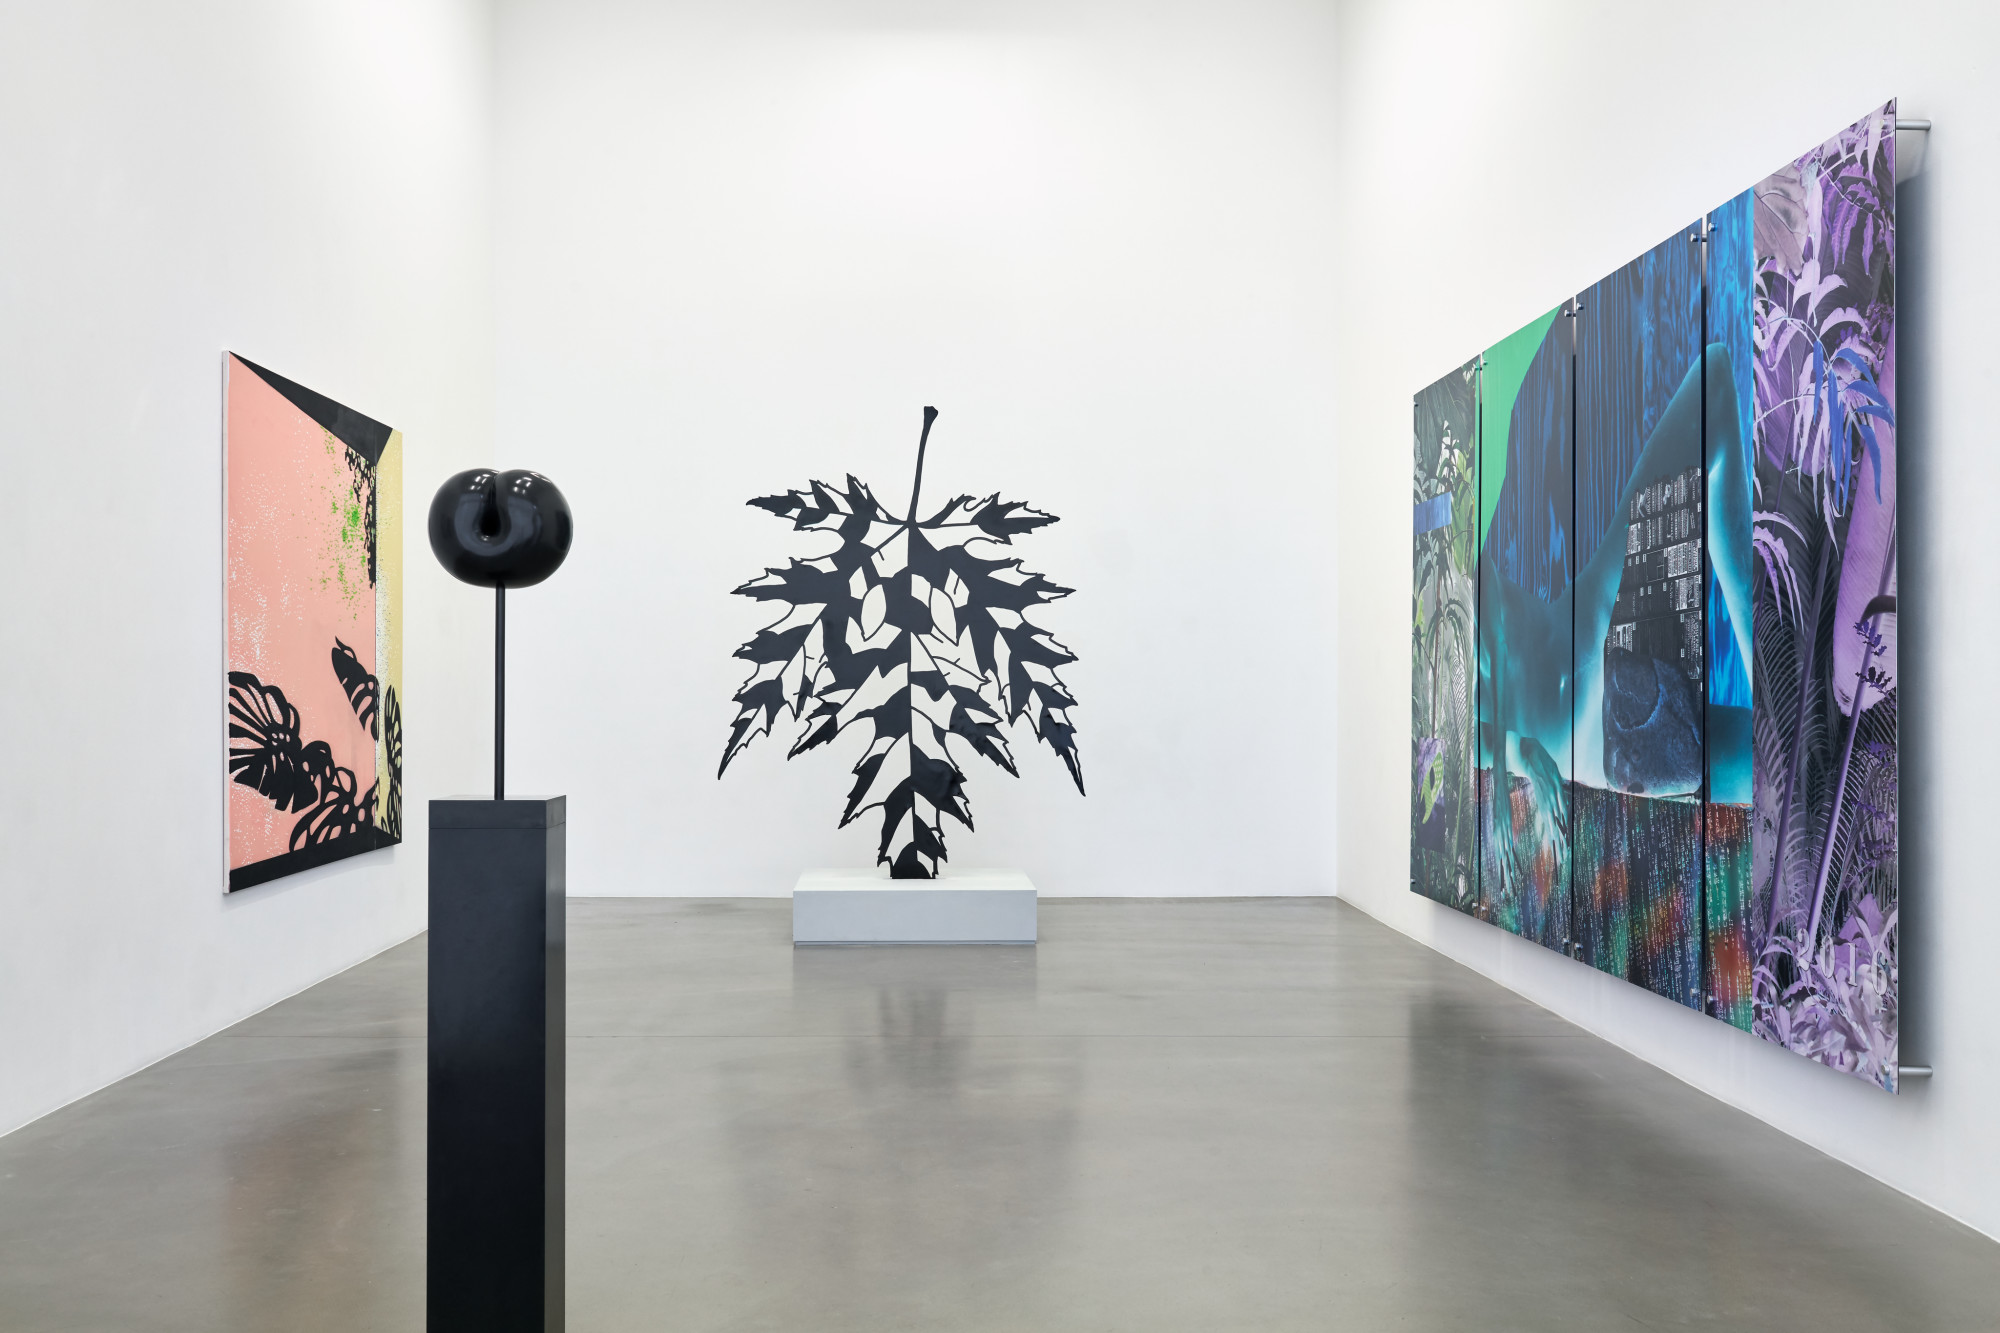 "<div class=""artwork_caption""><p>Installation view, 2019</p><p><span>Photo by Robert Glowacki</span></p></div>"